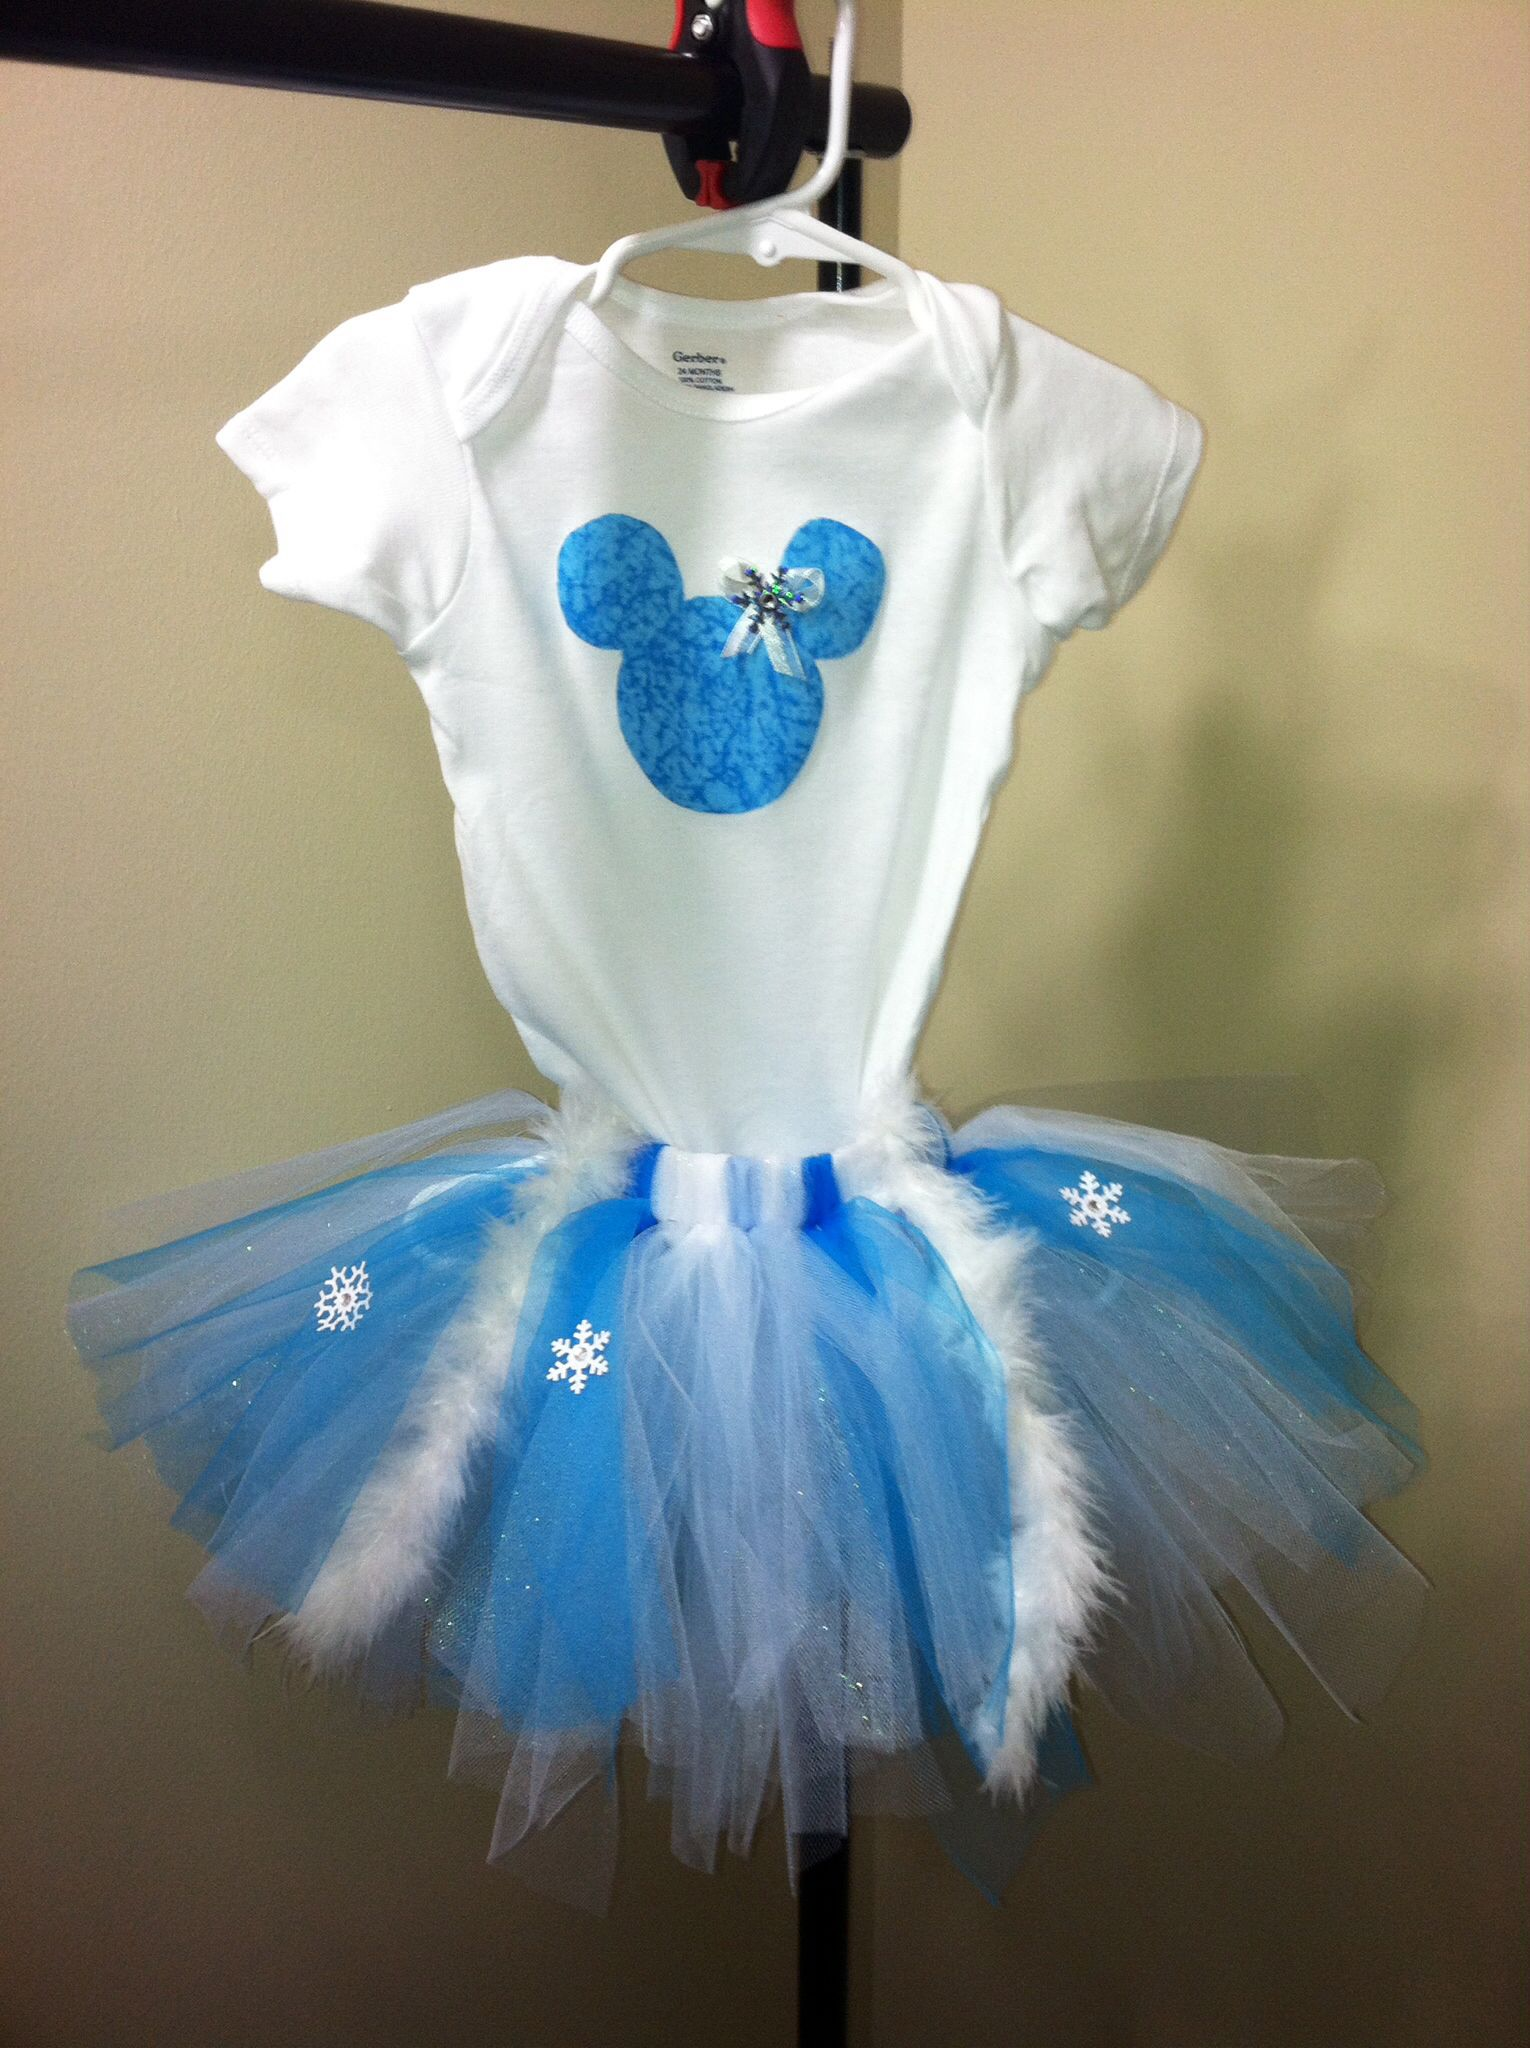 b6c725a8d Frozen inspired tutu outfit